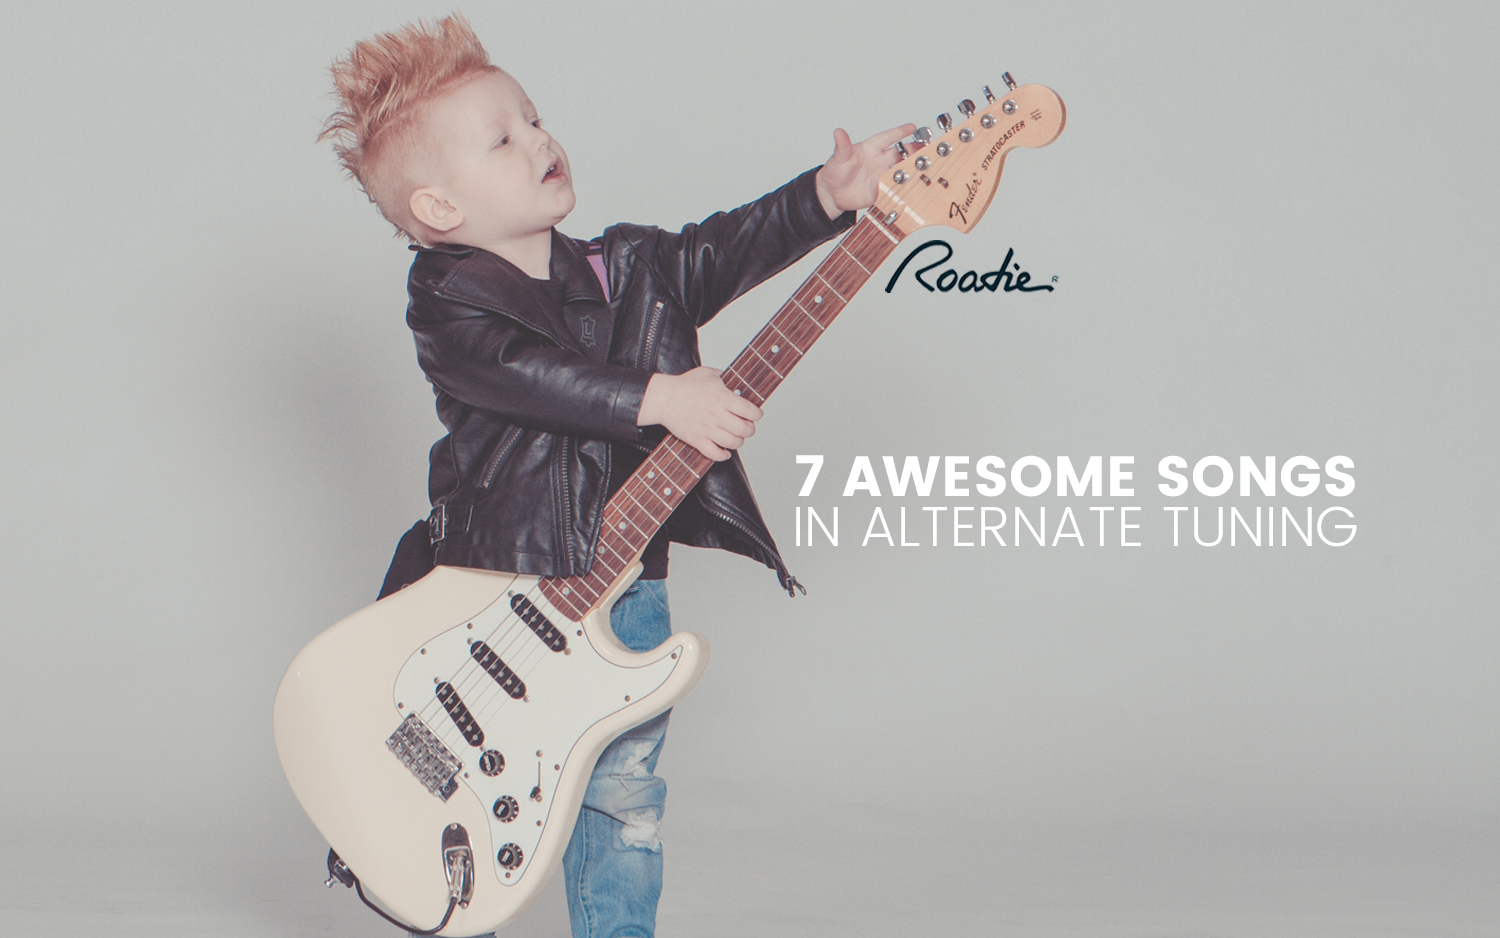 7 Awesome Songs in Alternate Tuning